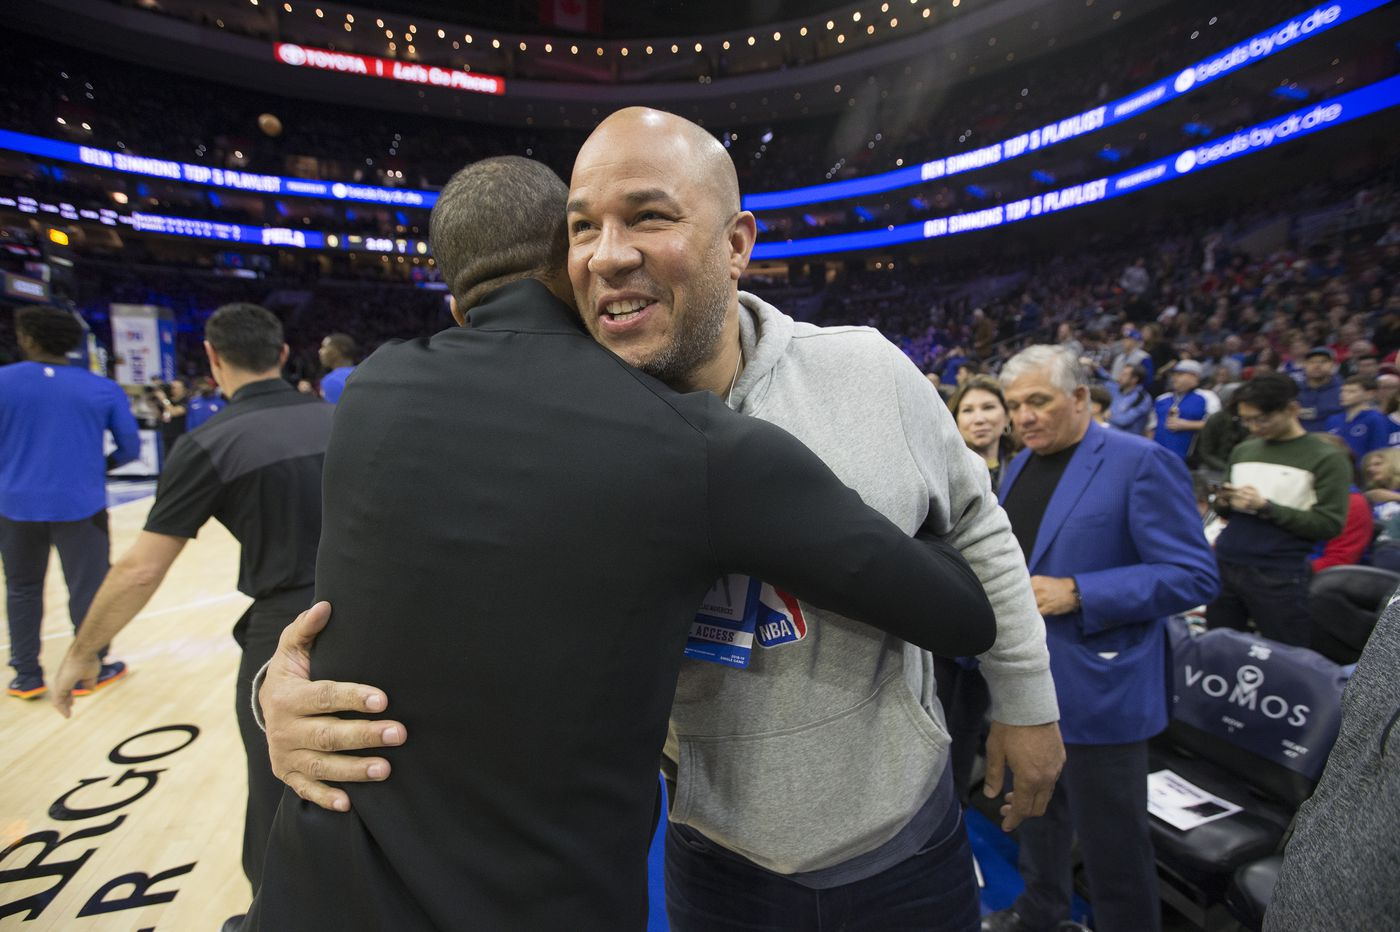 New Camden basketball coach Rick Brunson sees himself in players: 'I was that kid'